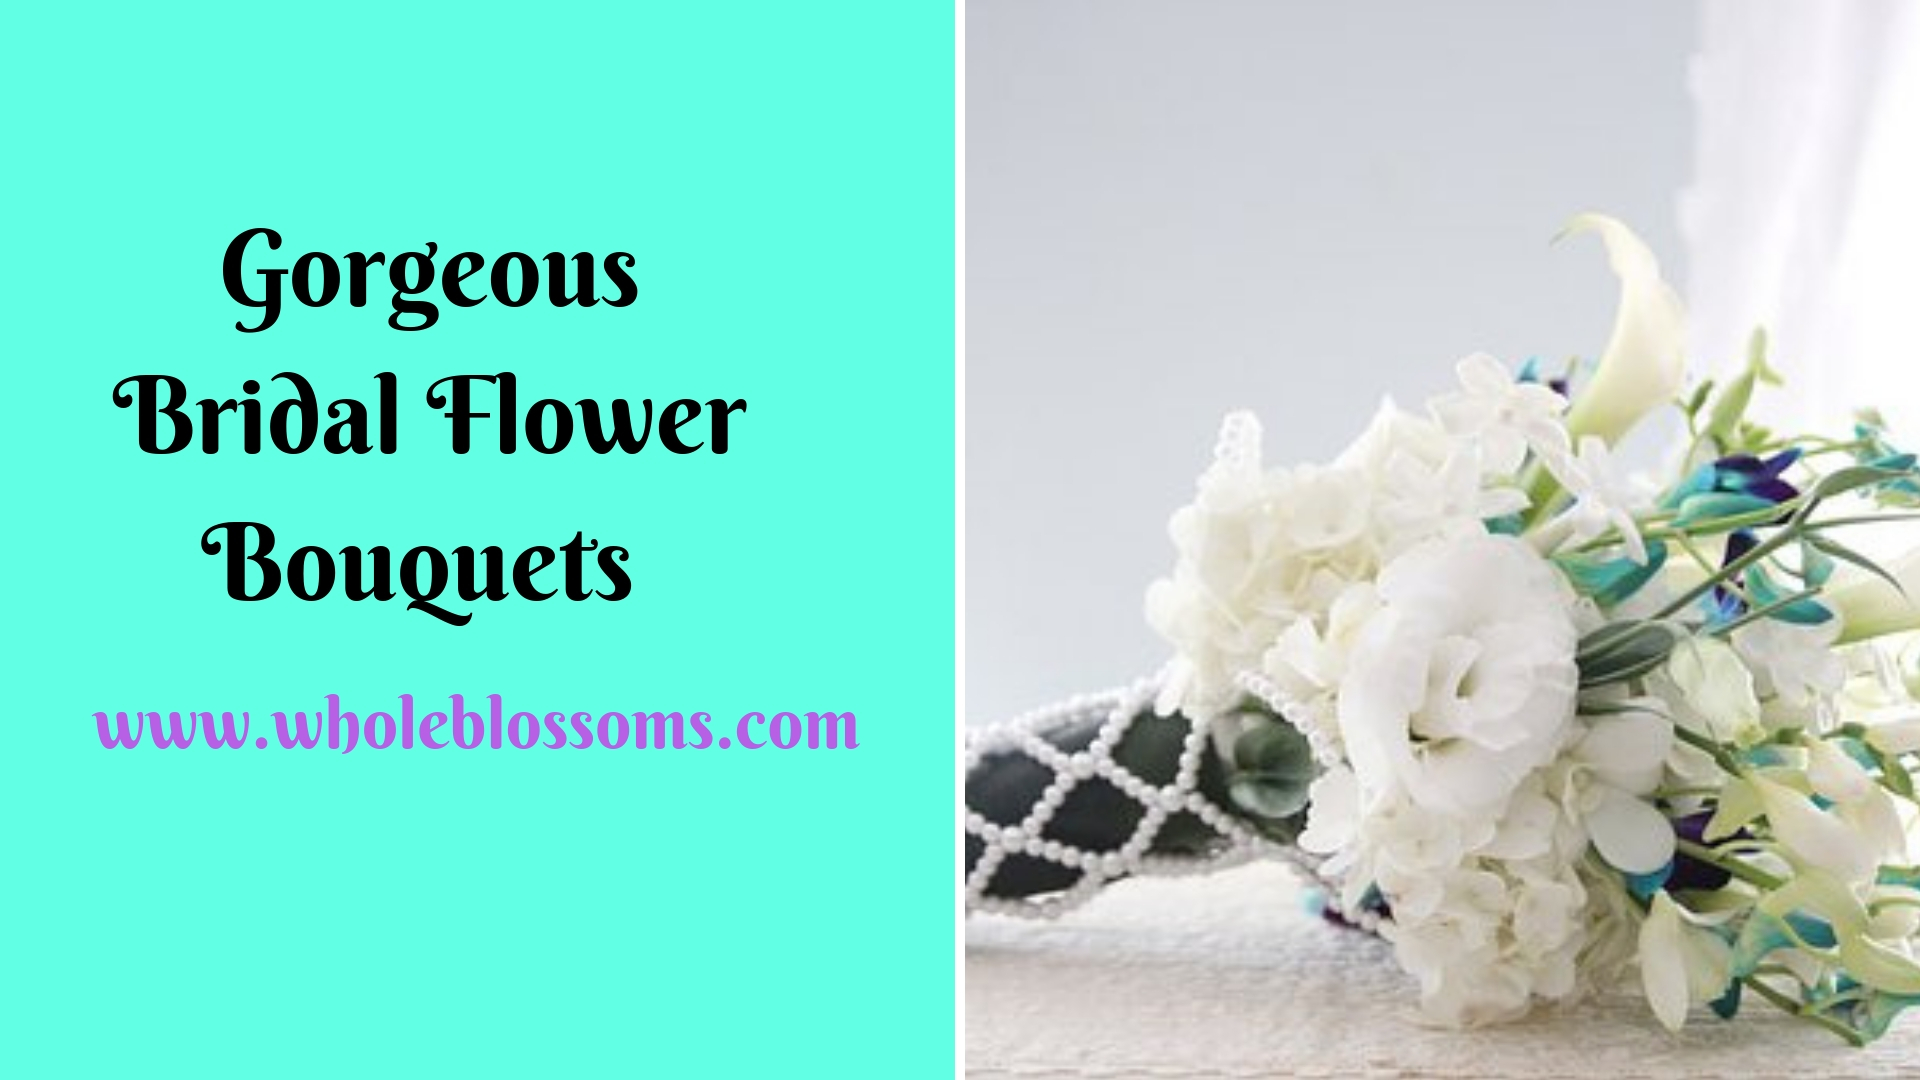 Buy Scenic Bridal Flowers and Bouquets from Whole Blossoms